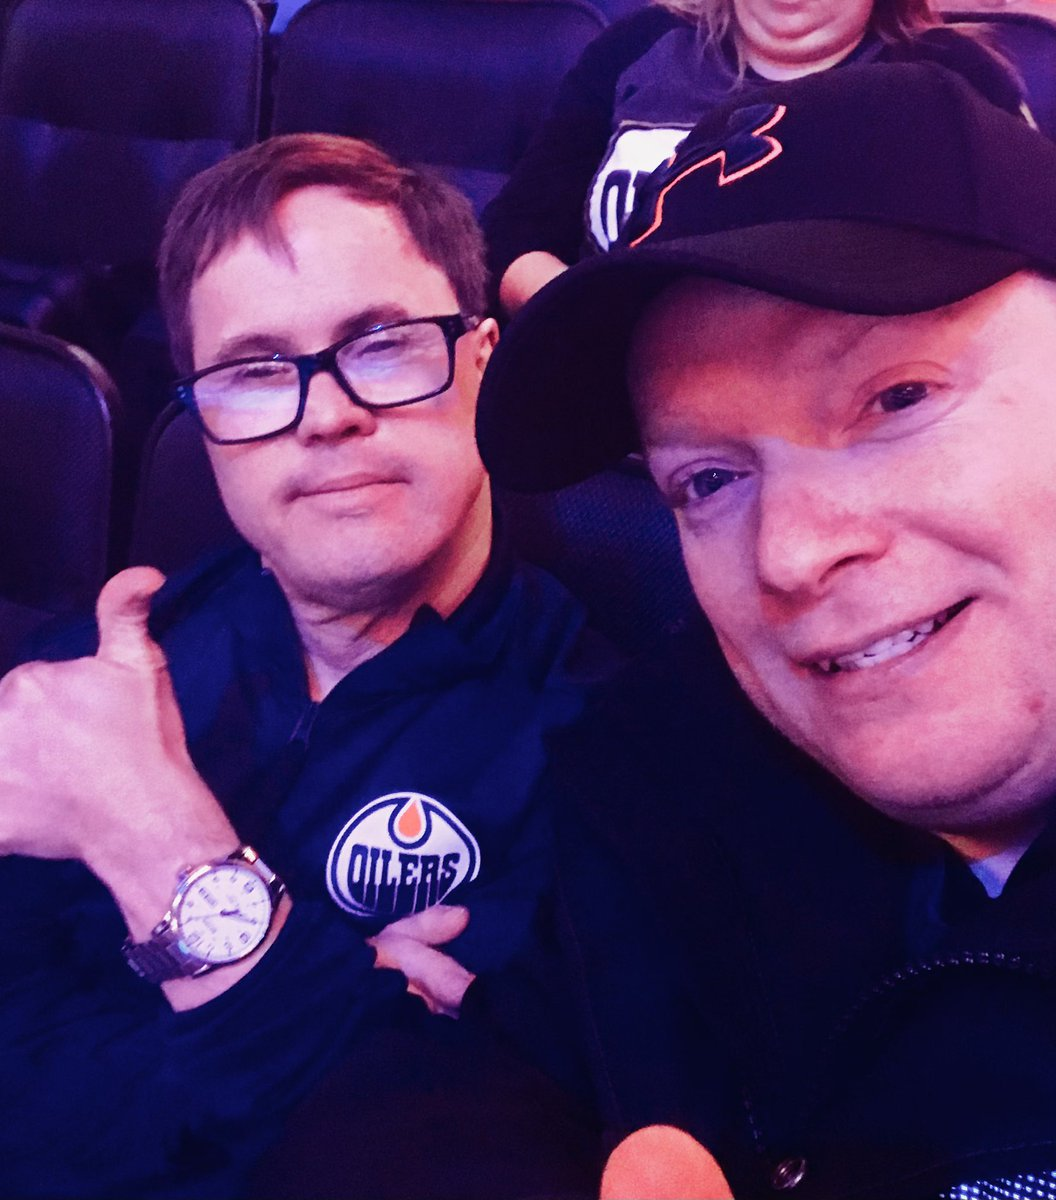 Oh dear.  I'm done with 2020.  I'm so sorry @EdmontonOilers.  Joey was a wonderful soul.  Honored to have shared a game with him.  Condolences to Joey's friends, family and #LetsGoOilers fans.   #yeg #nhl https://t.co/ThOyNv9RzG https://t.co/IxZrc3maaU